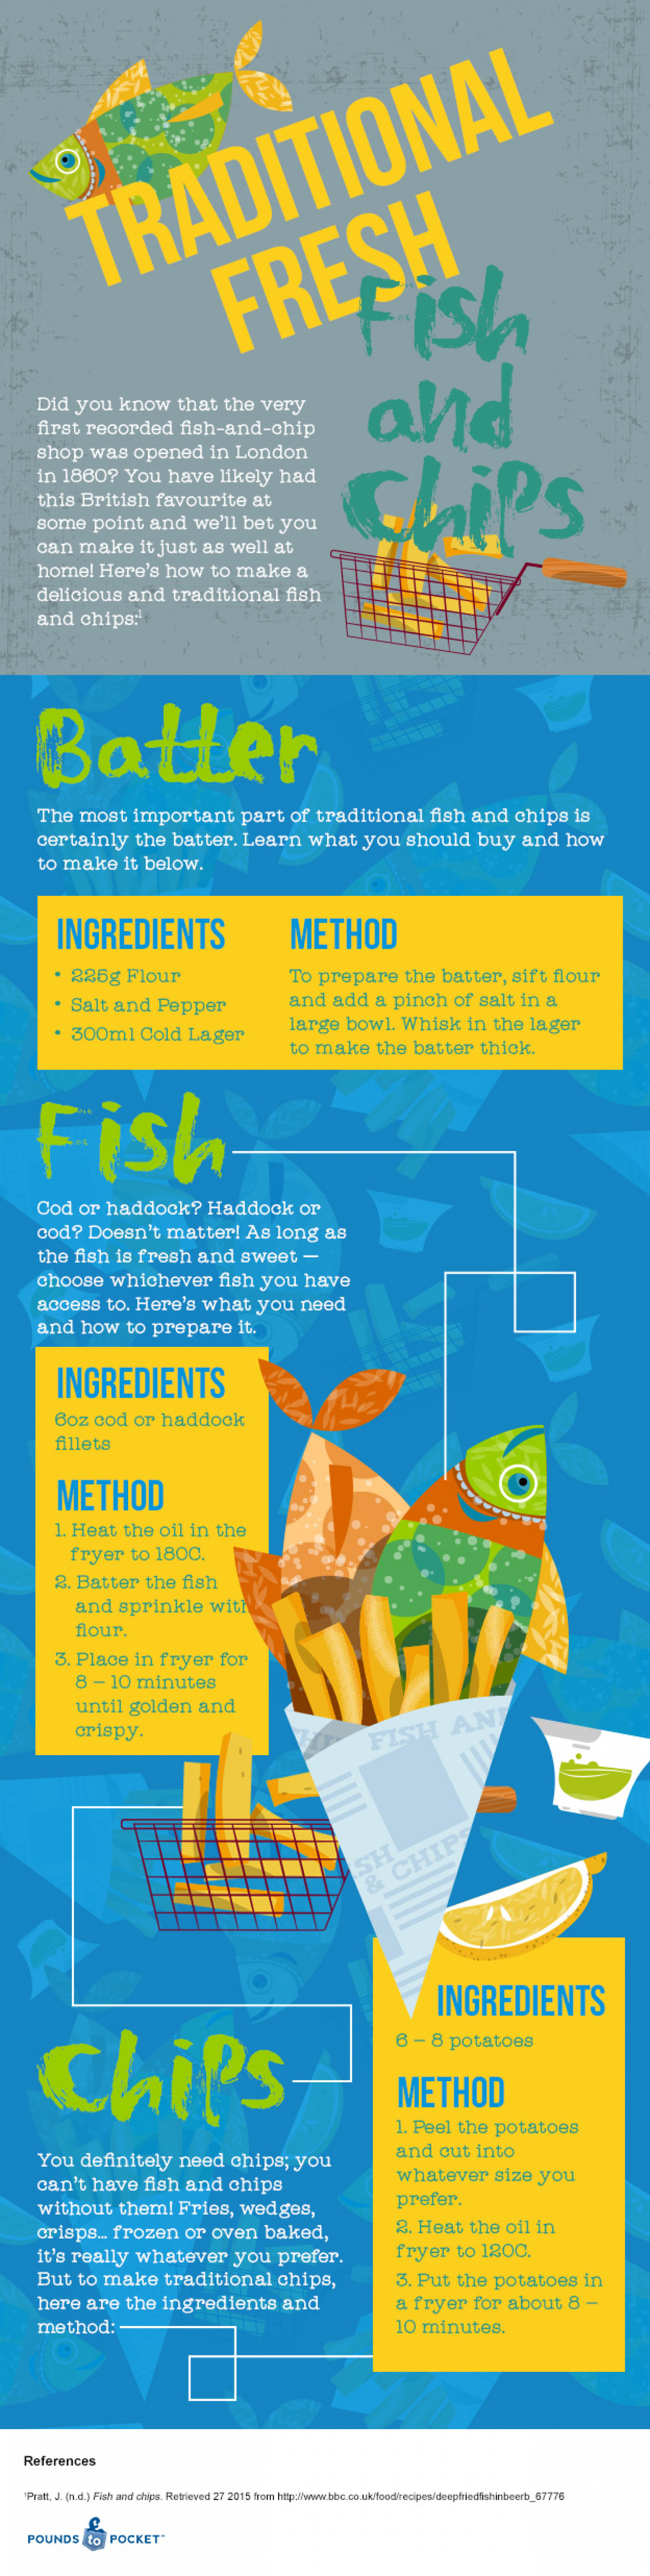 International Recipes: Fish & Chips Infographic